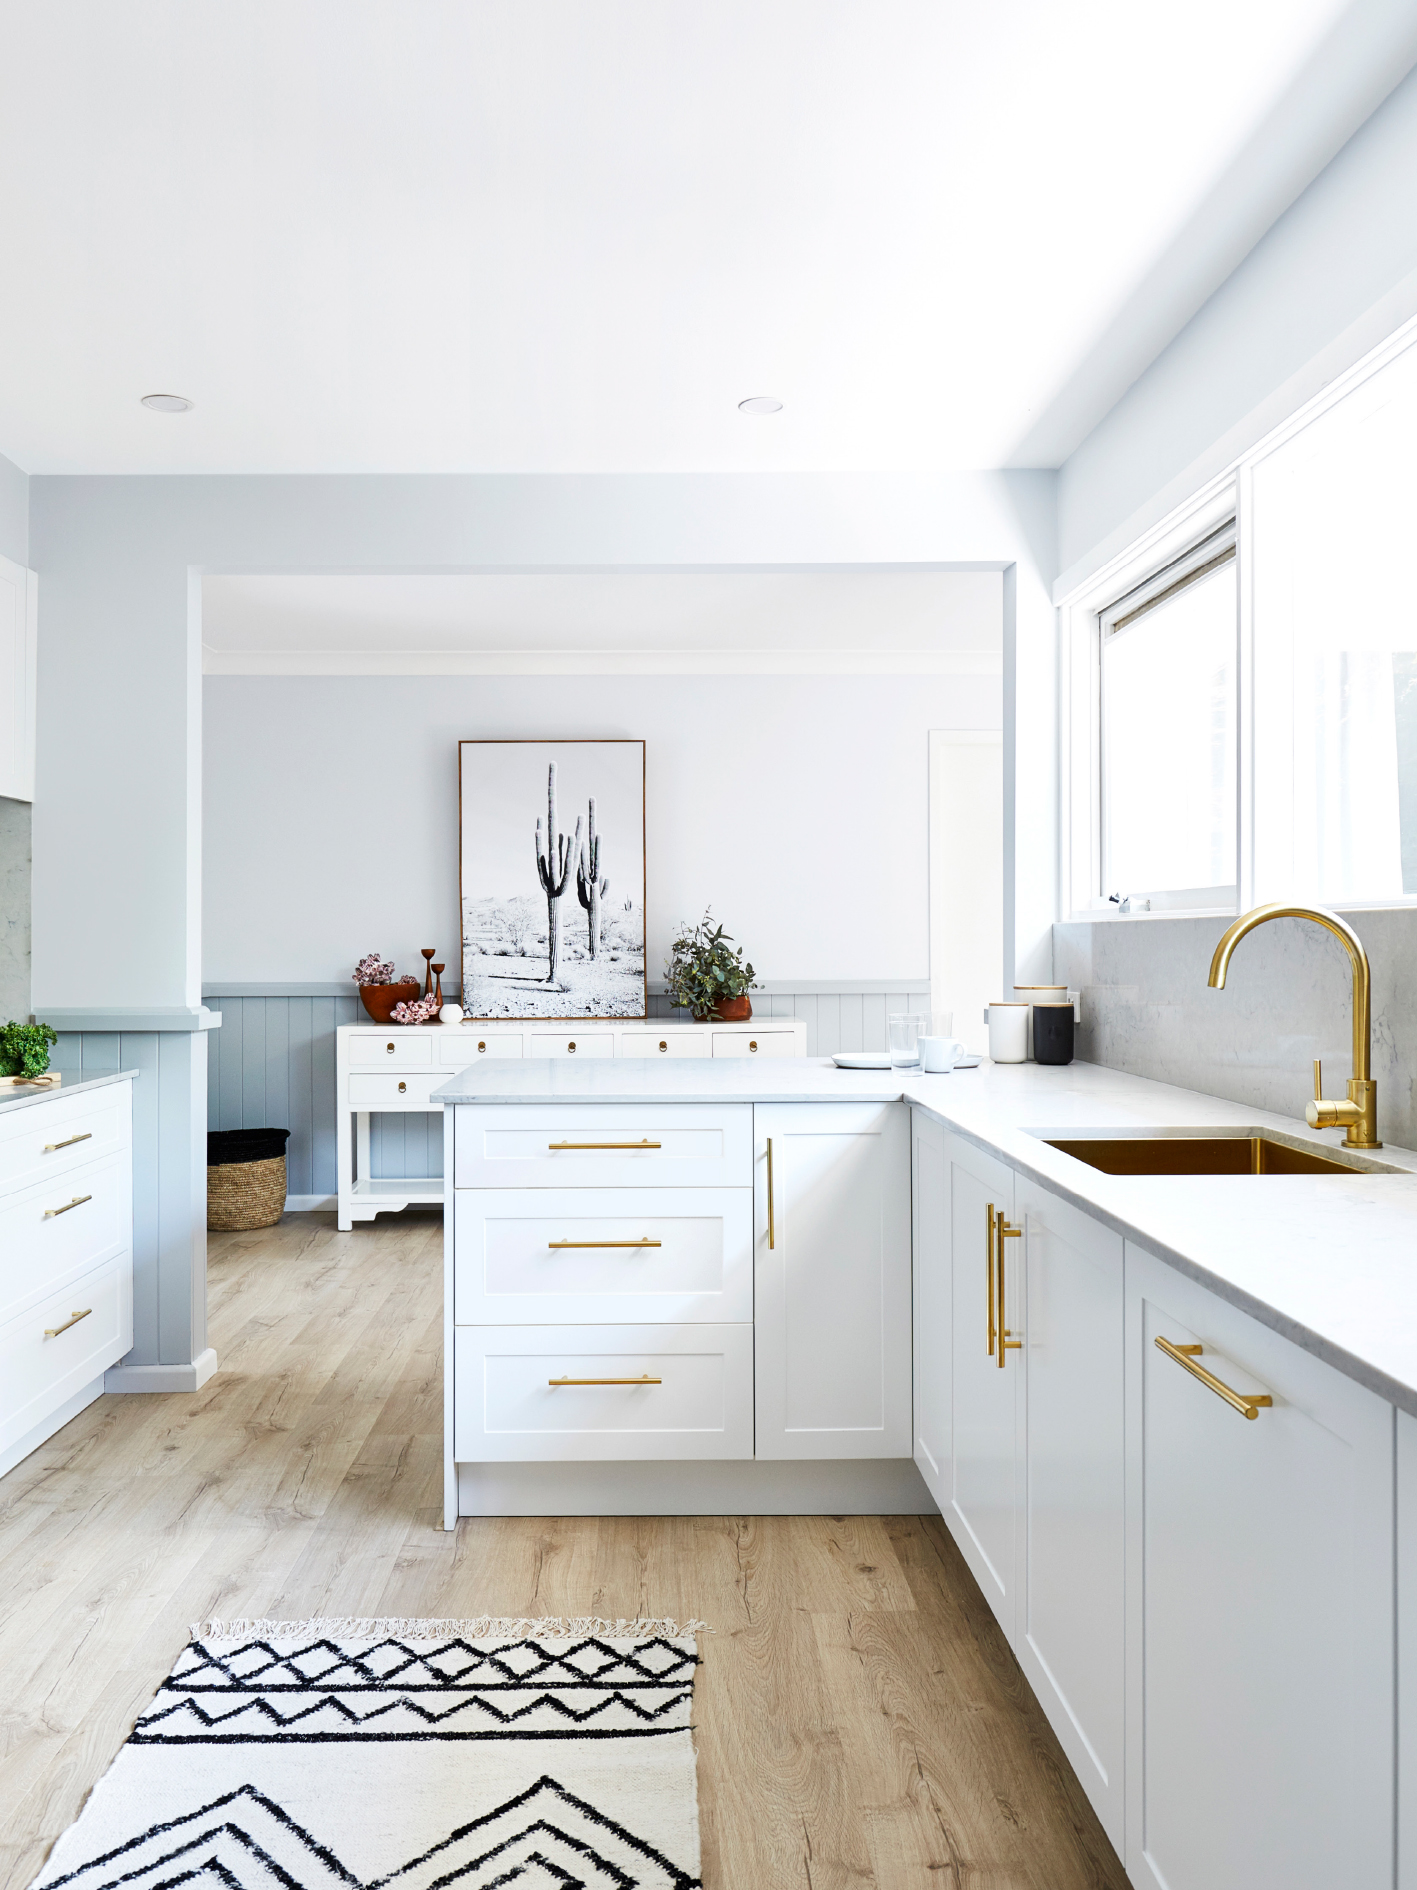 Shaker style cabinets boast a simple and minimalist designed, pioneered by the Shakers back in the 1800s.